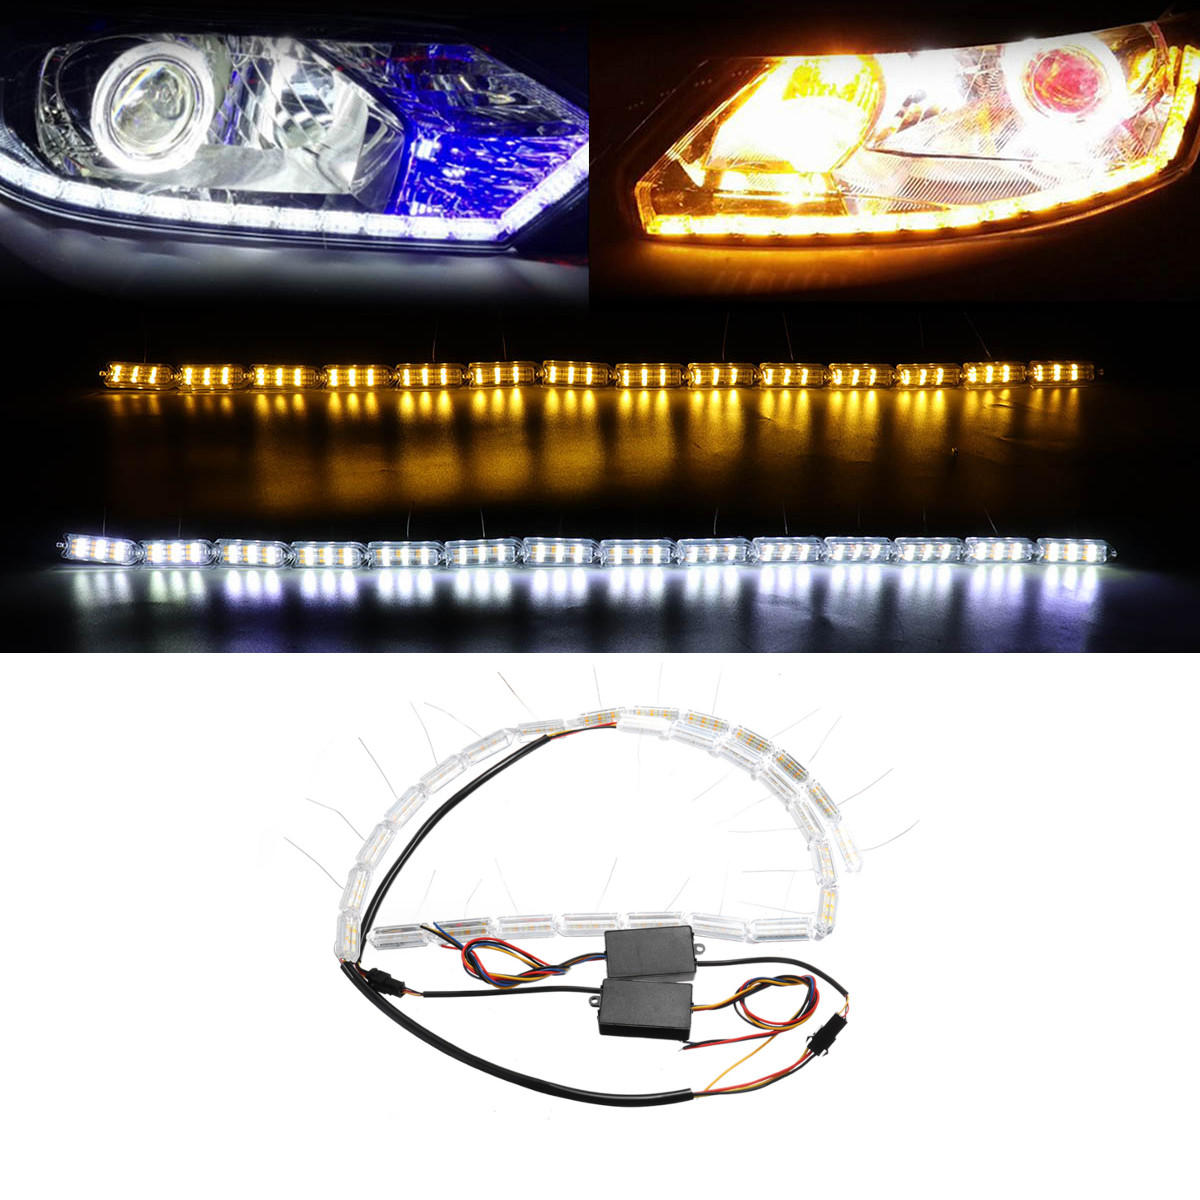 TASWK 2Pcs Motorcycle LED Double Indicator Lights Turn Signals Amber and Blue